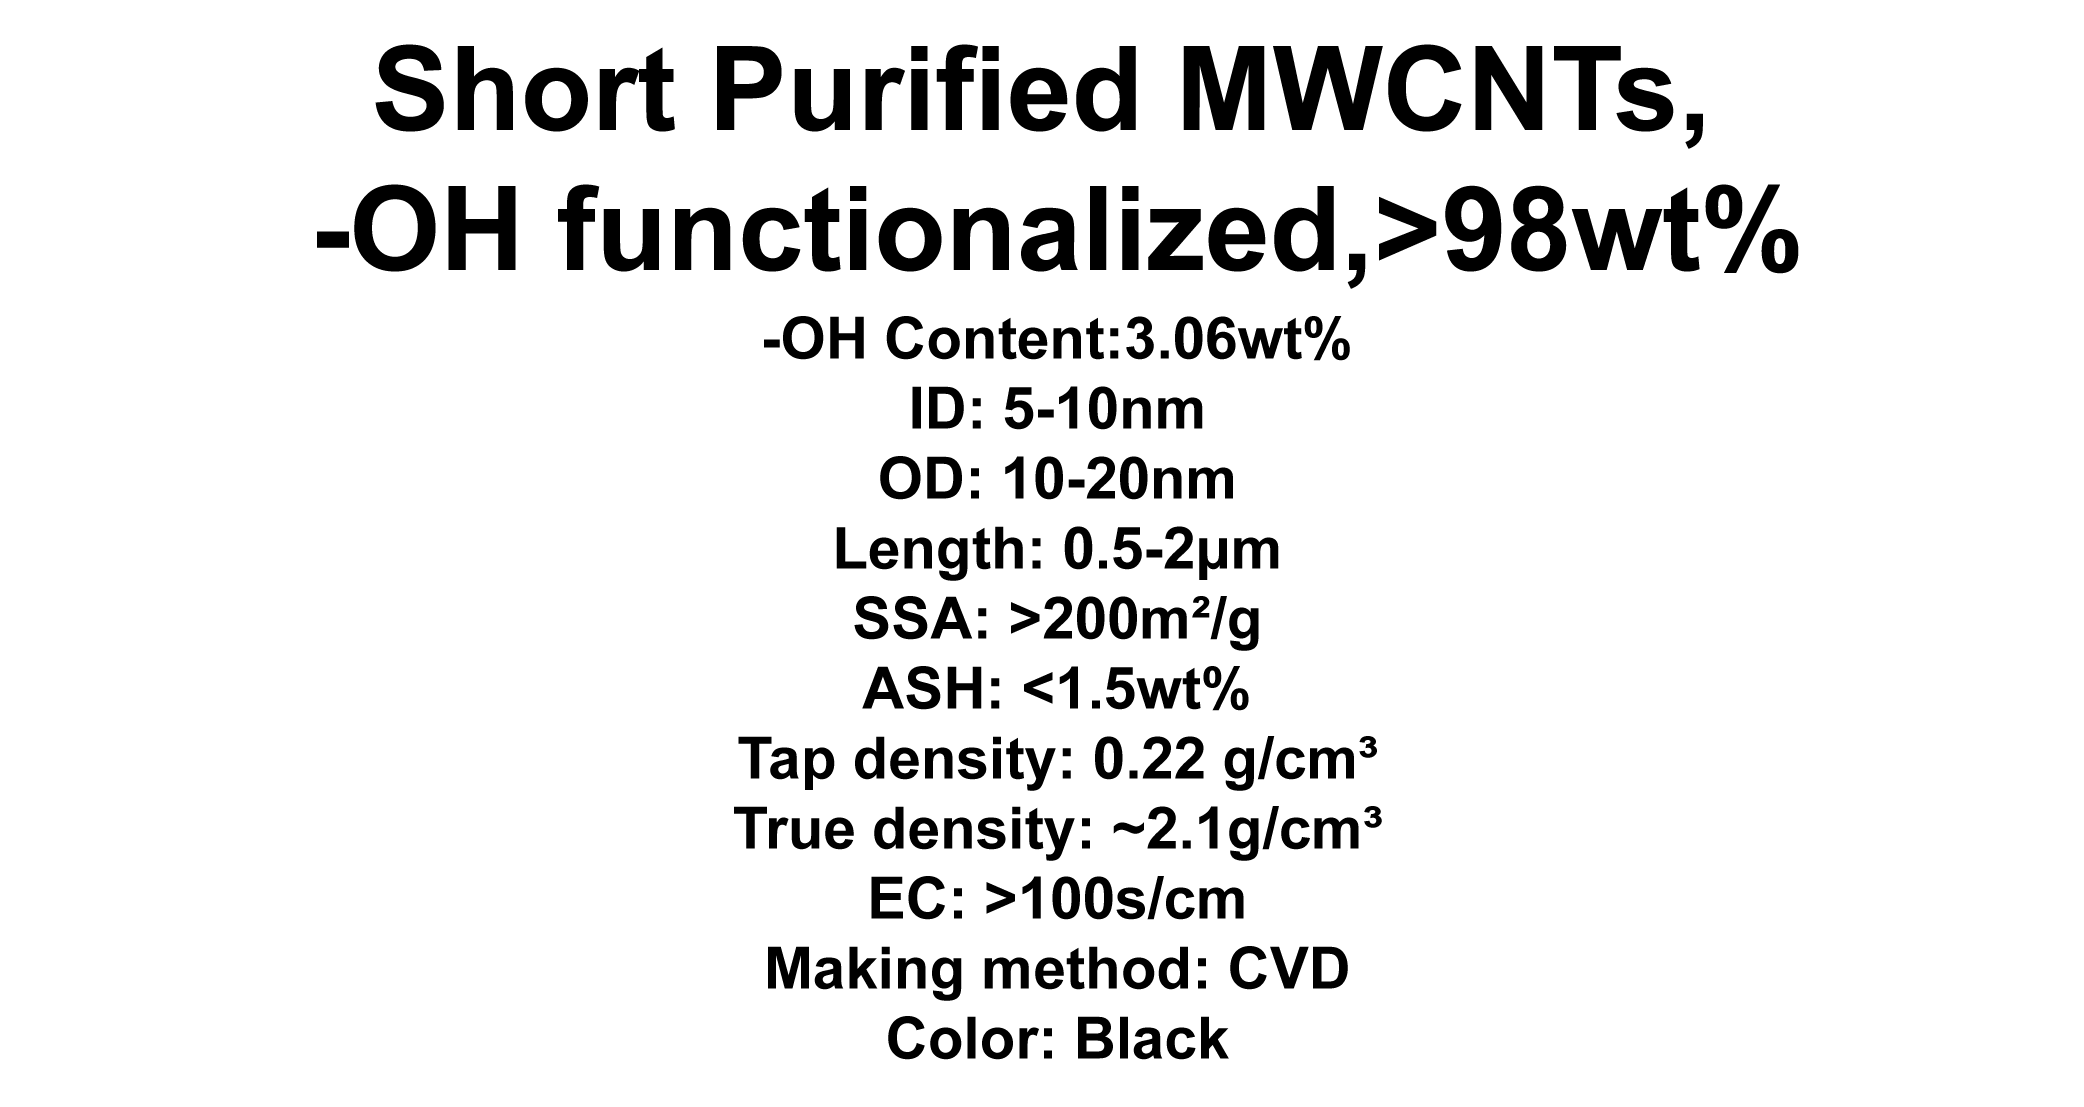 Short Purified MWCNTs, -OH functionalized (TNSMH3)